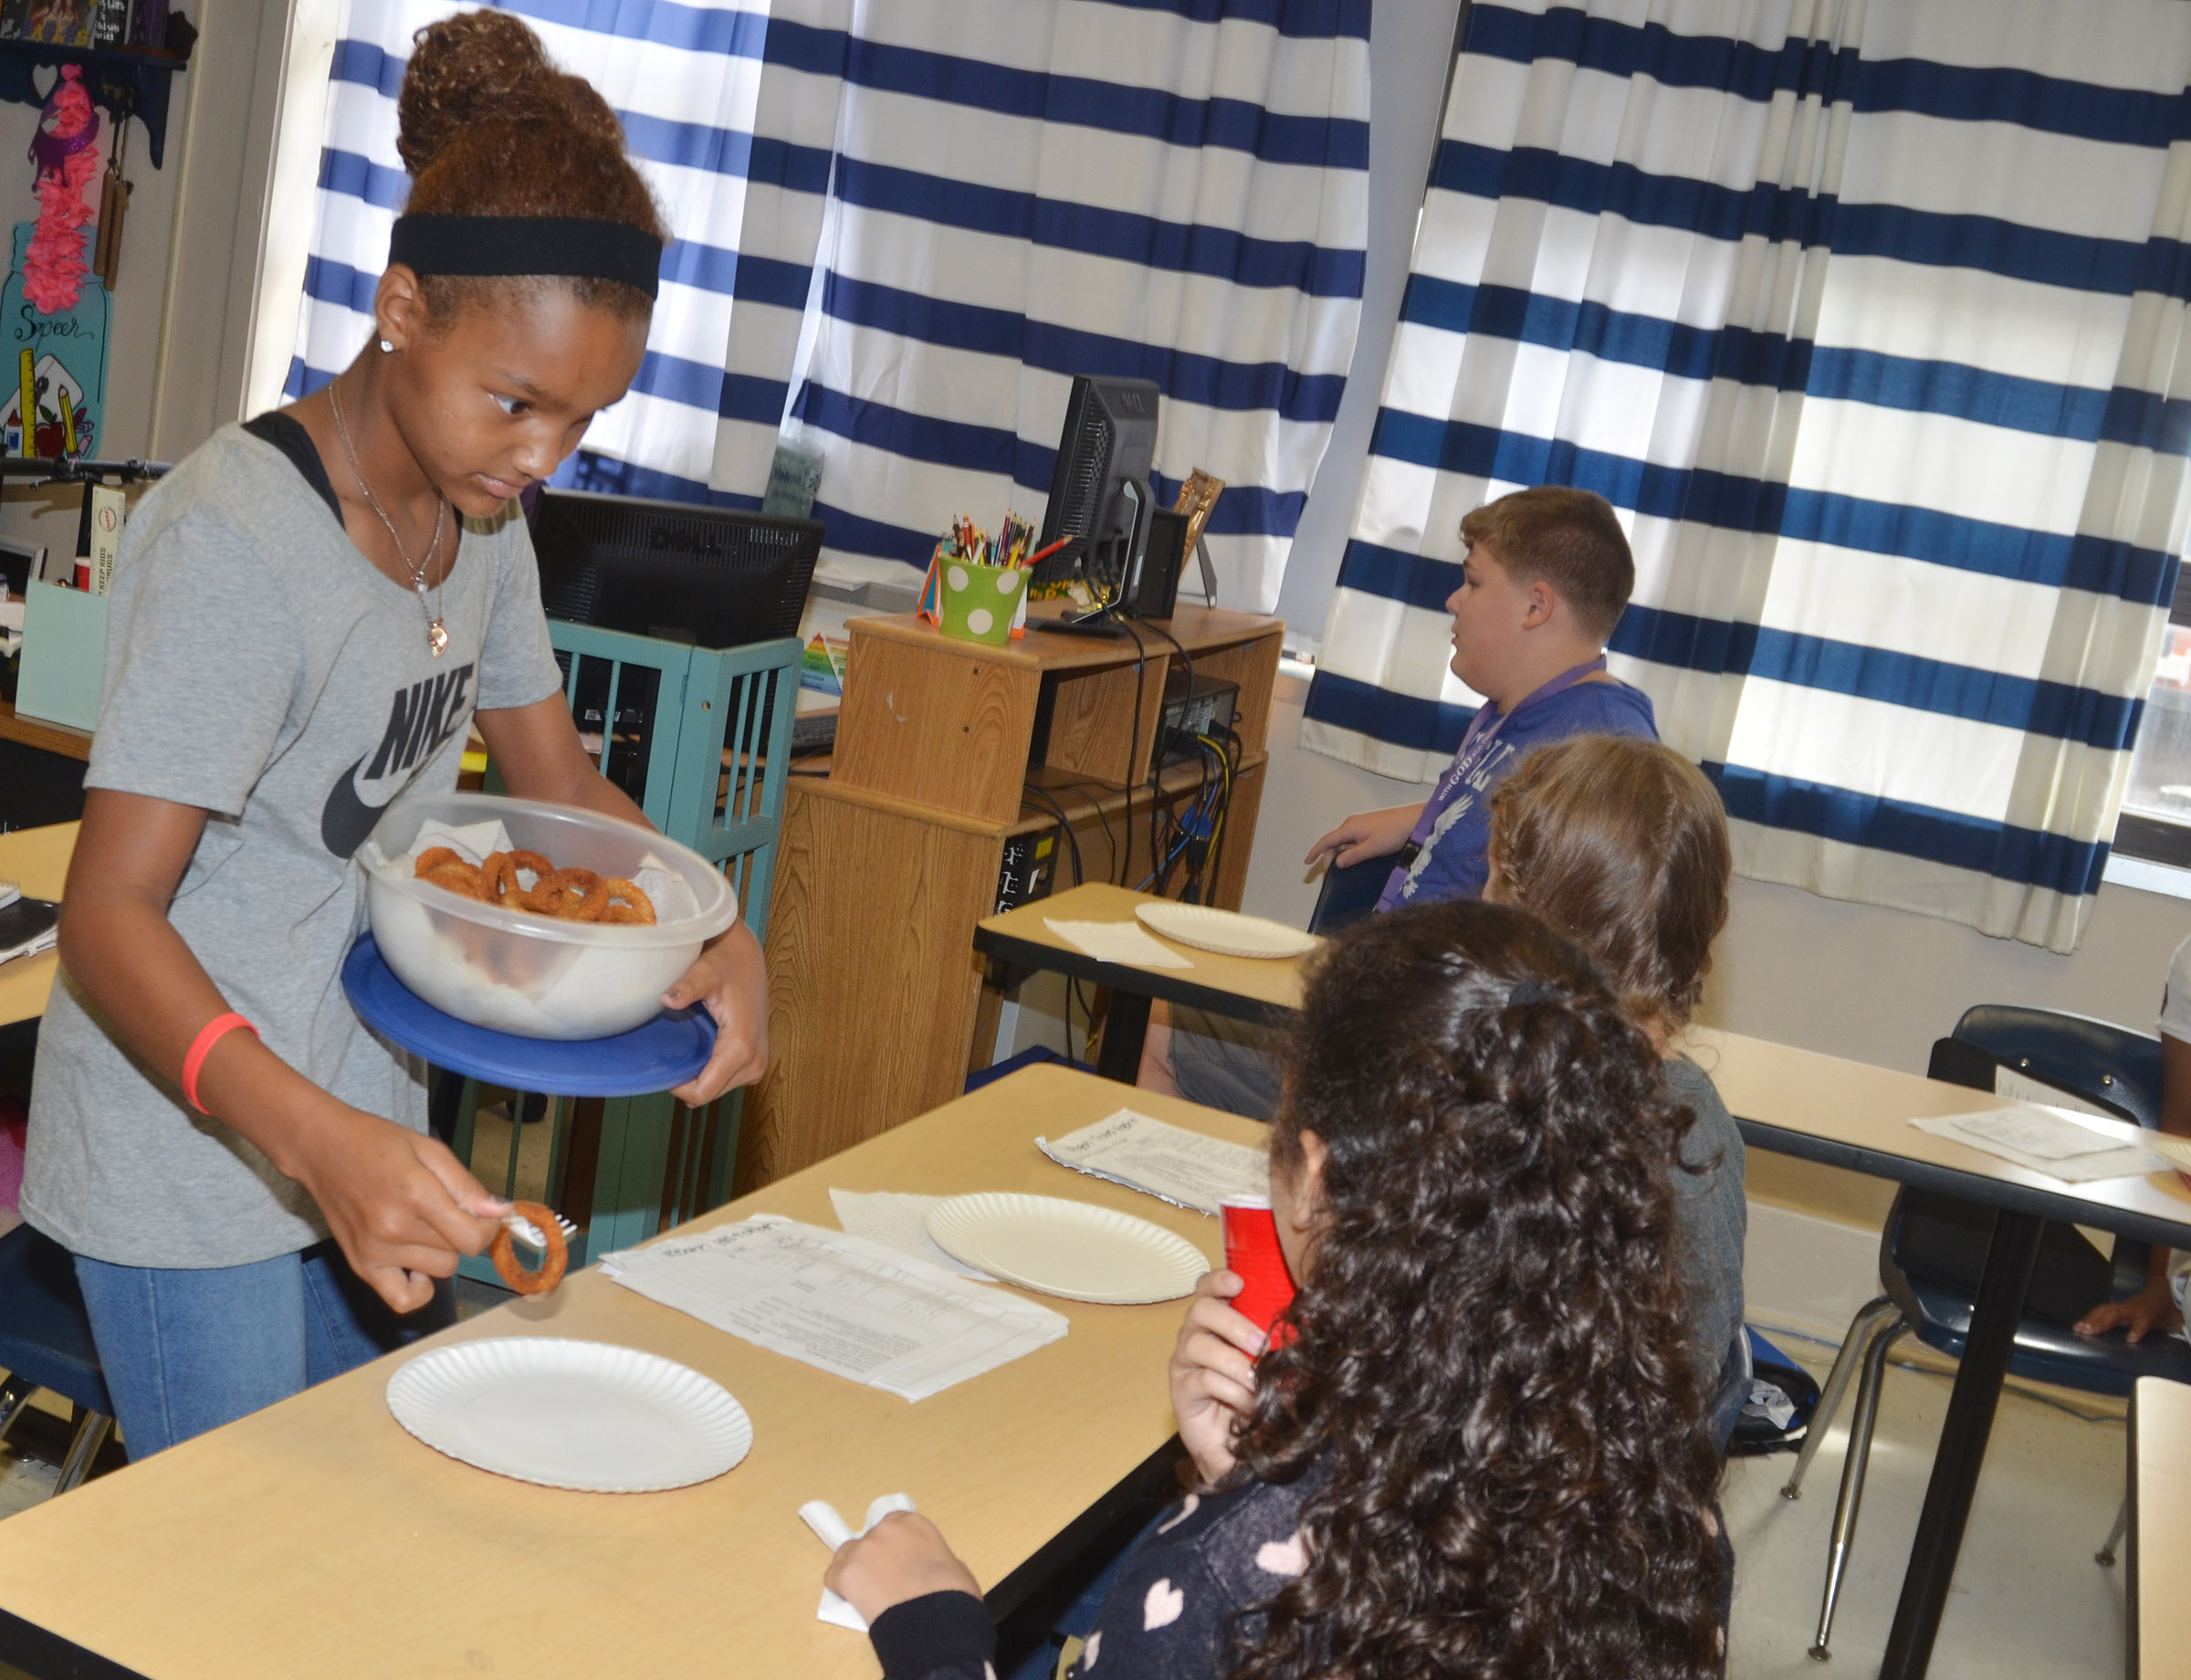 CMS eighth-grader Alexis Thomas passes out onion rings, a food originating from the western region.